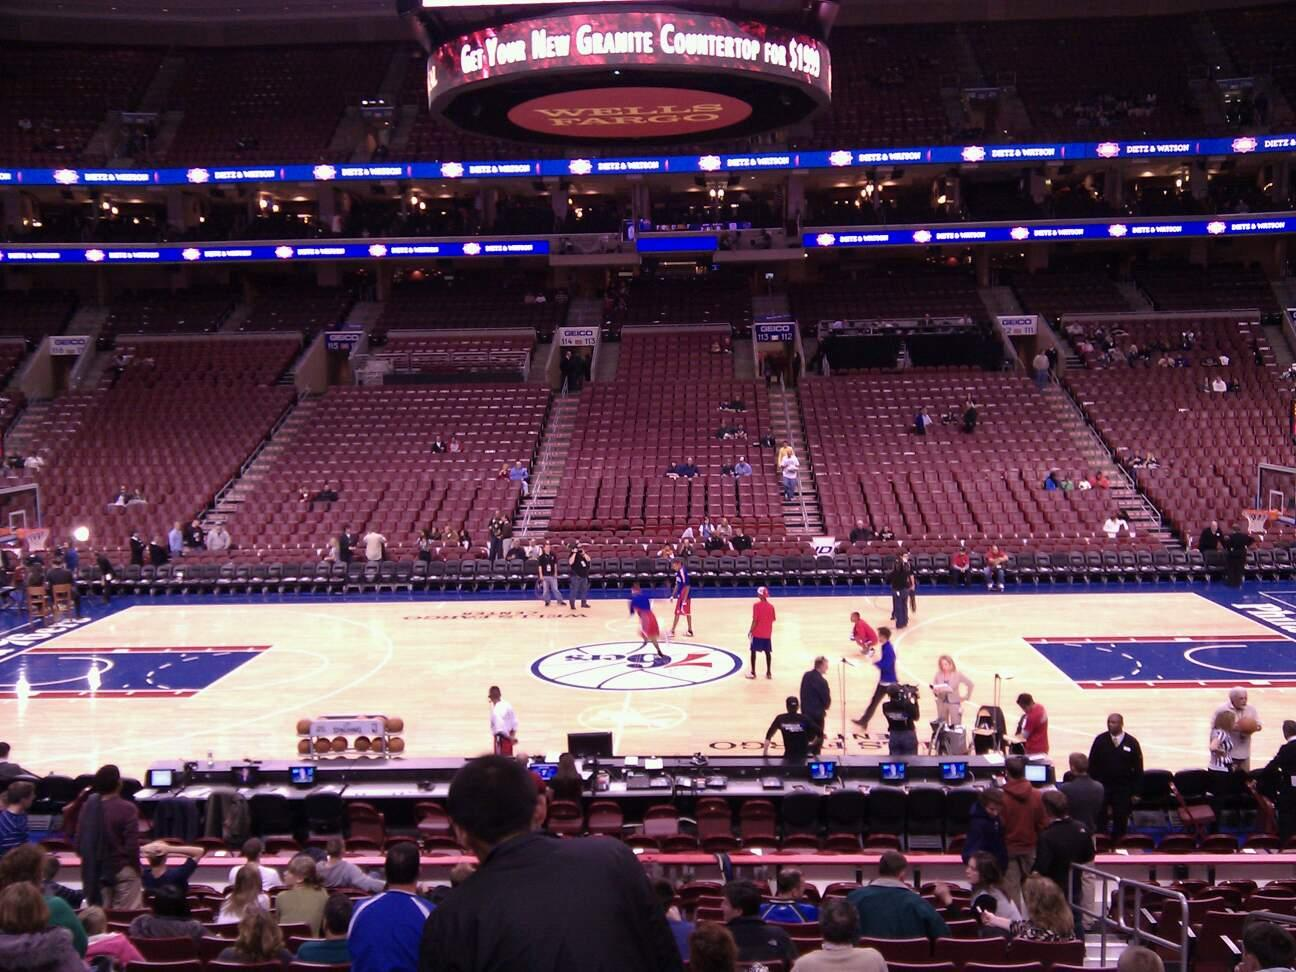 Wells Fargo Center Section 101 Row 16 Seat 12